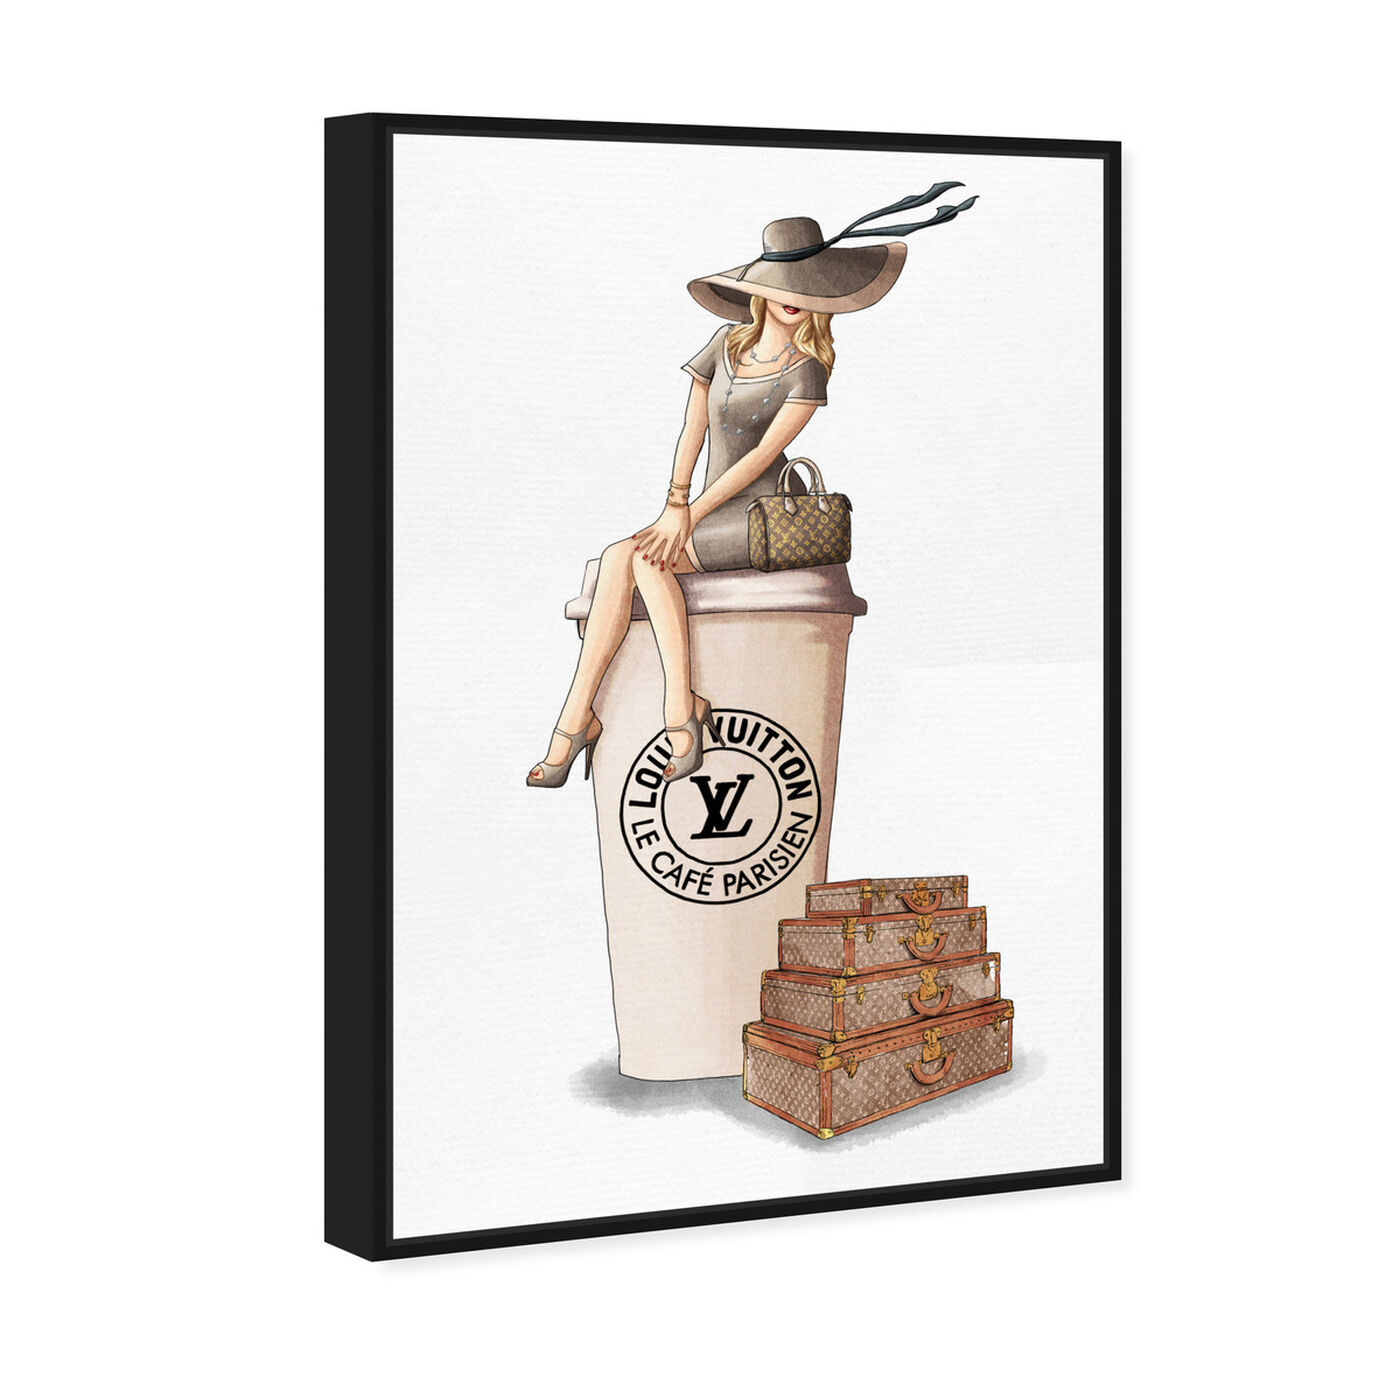 Angled view of Cafe au Lait Paris featuring fashion and glam and handbags art.